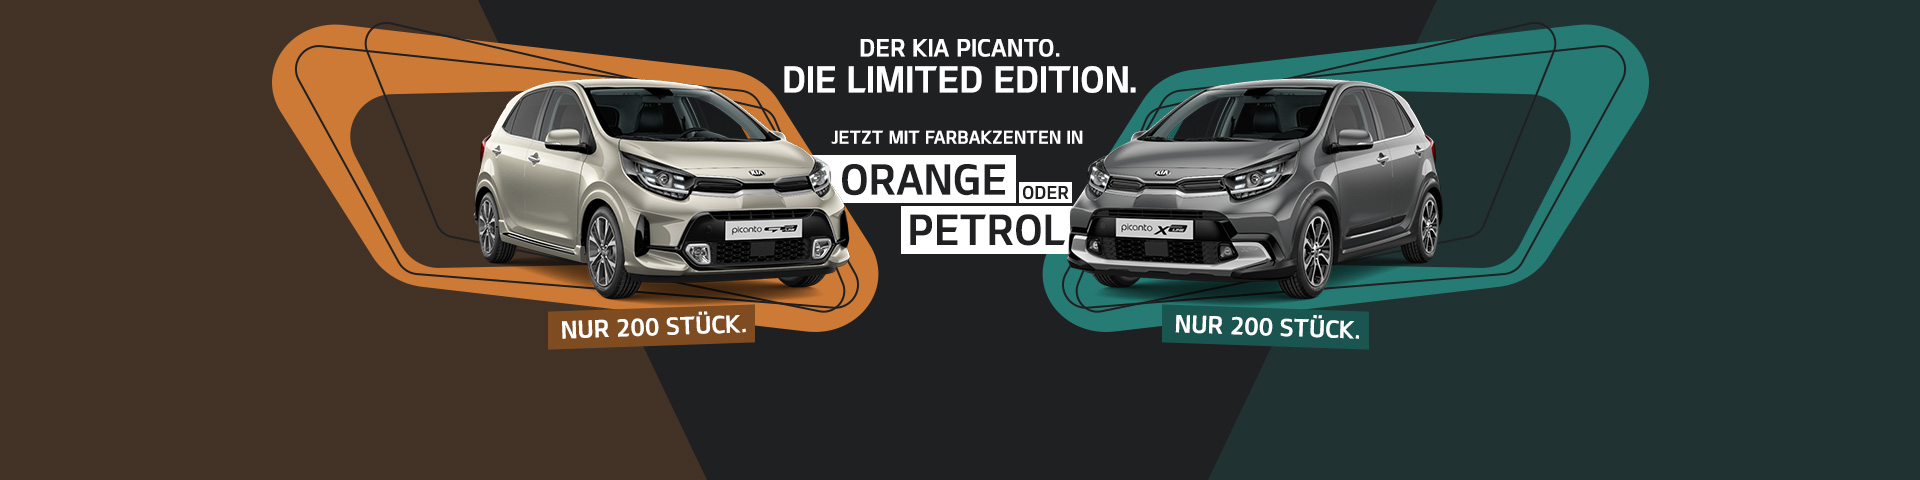 Kia Picanto Limited Edition - GT Line - X-Line